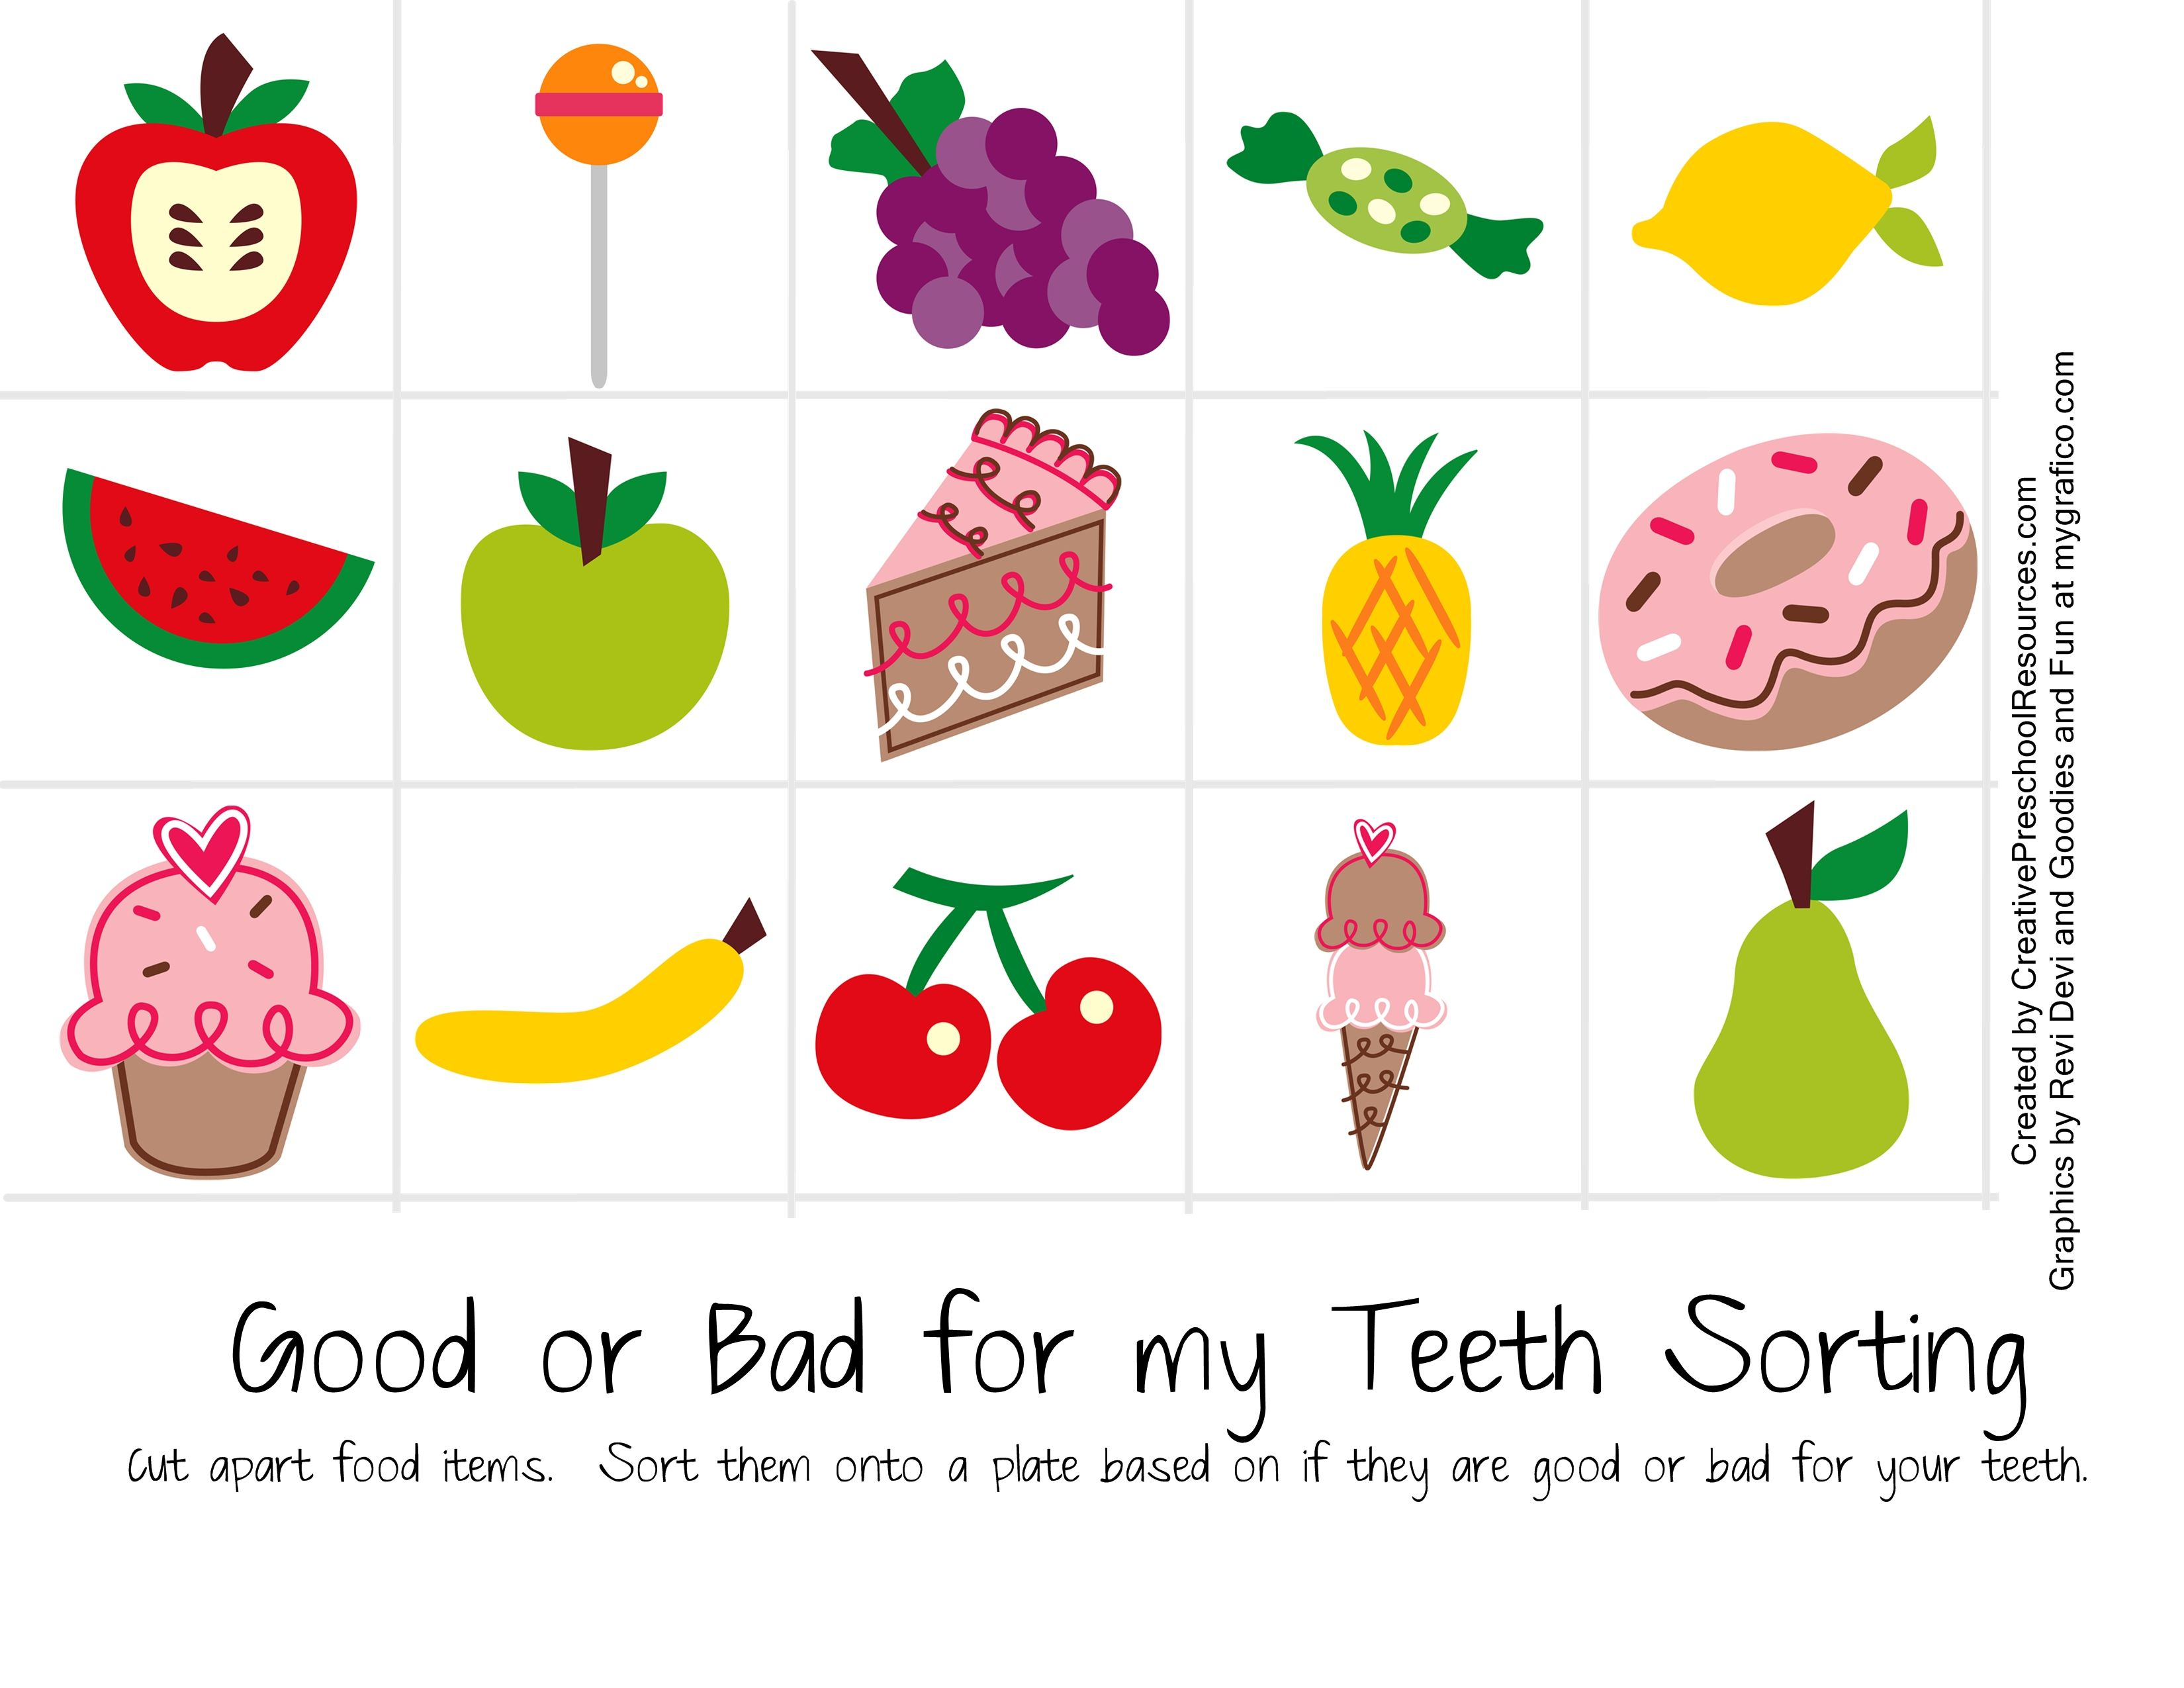 preschool dental health Google Search dental health